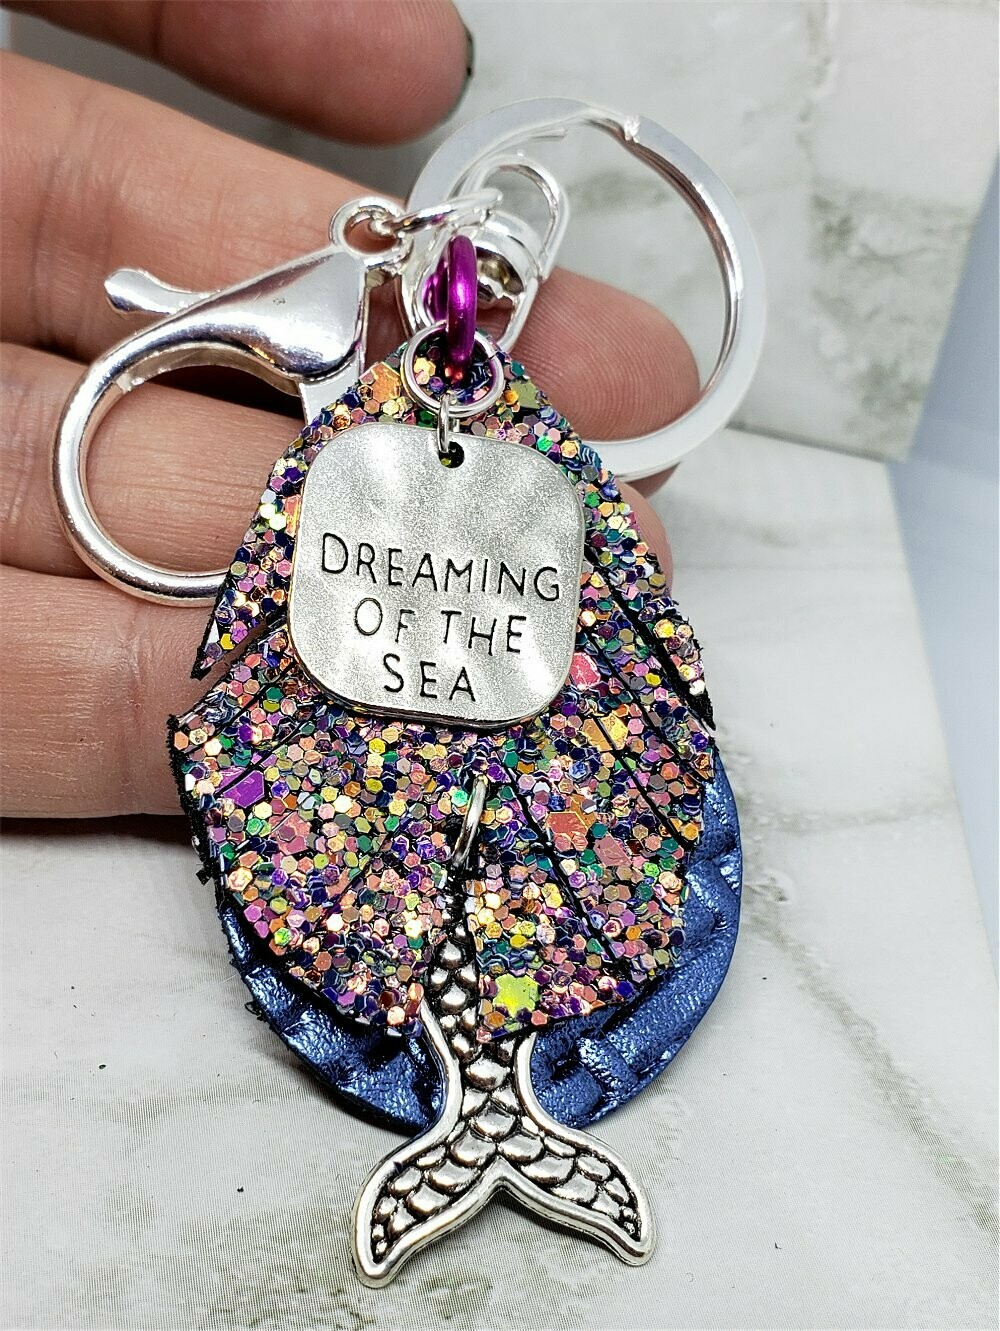 Dreaming of the Sea Mermaid Keychain with Leather, Faux Leather, and Silver Toned Metal Charms